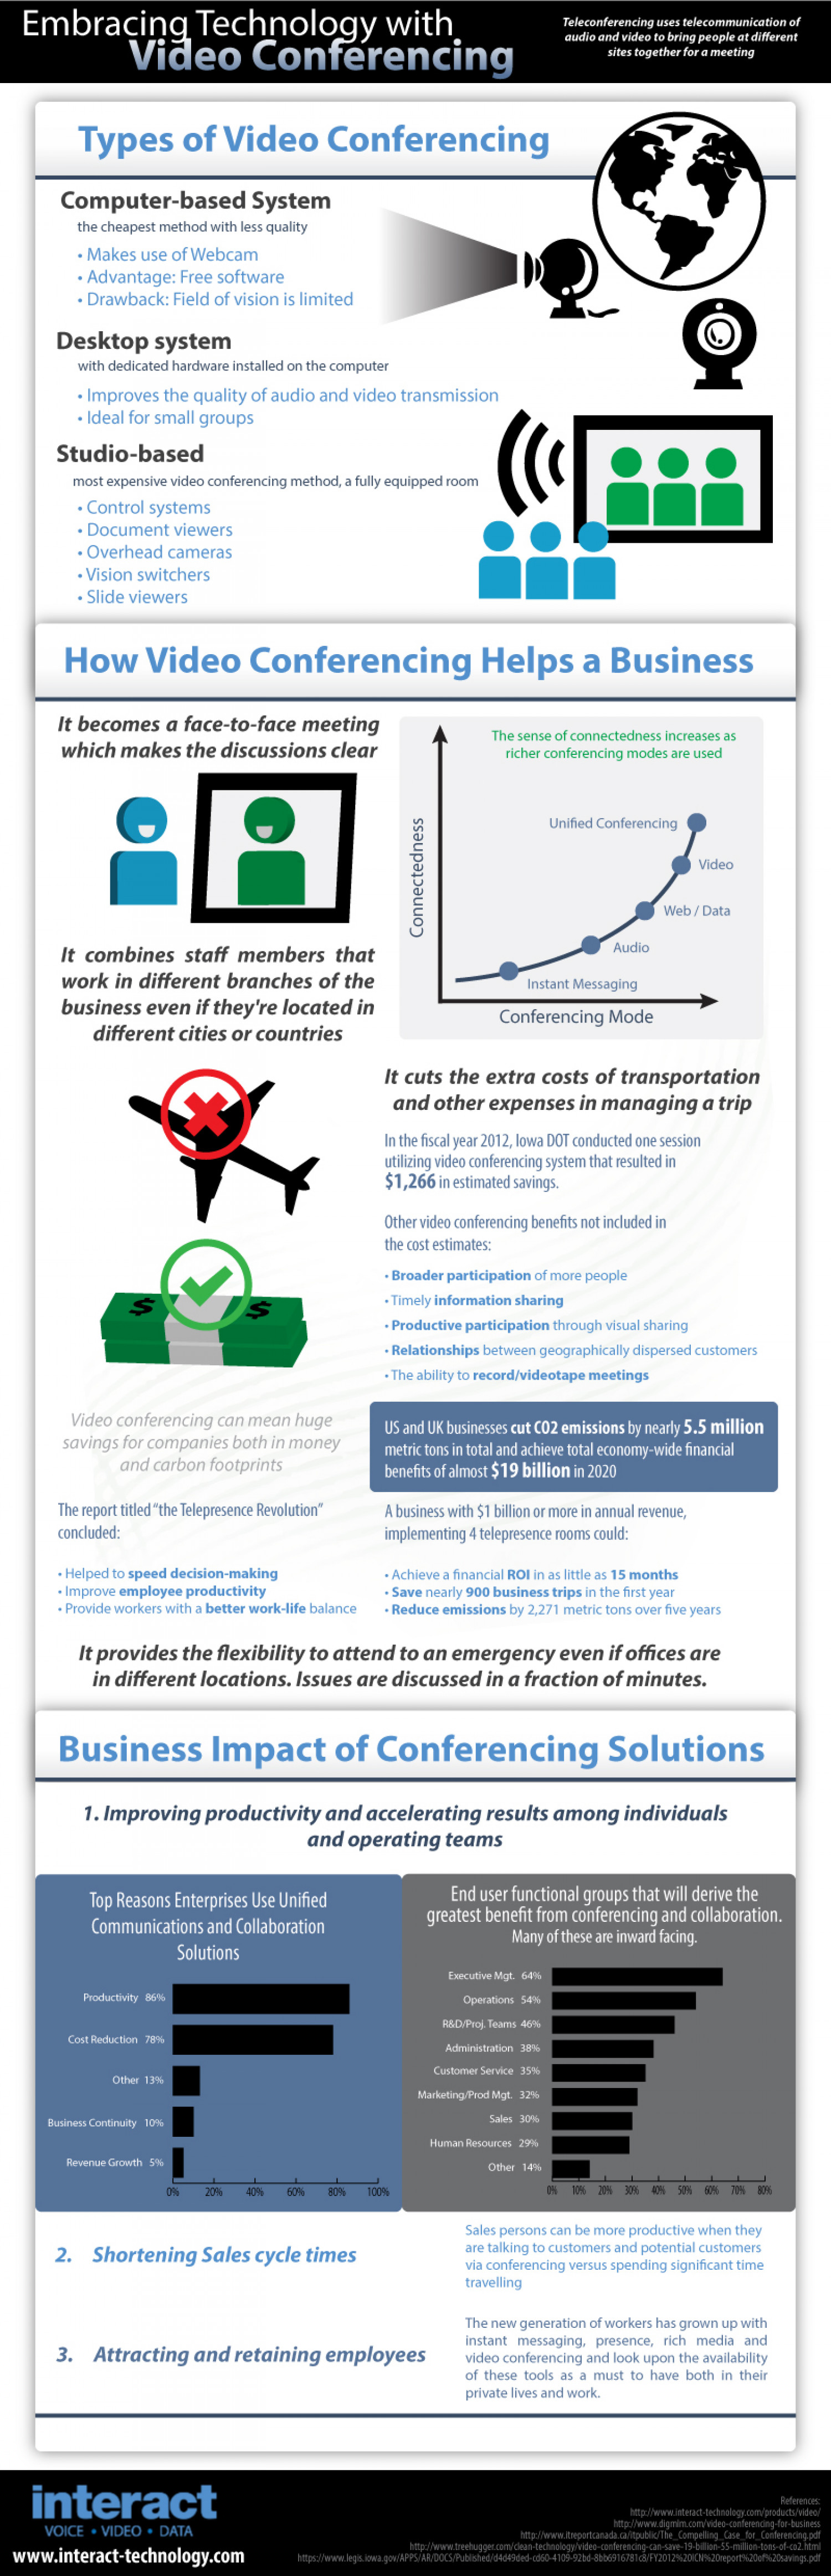 Embracing Technology with Video Conferencing Infographic